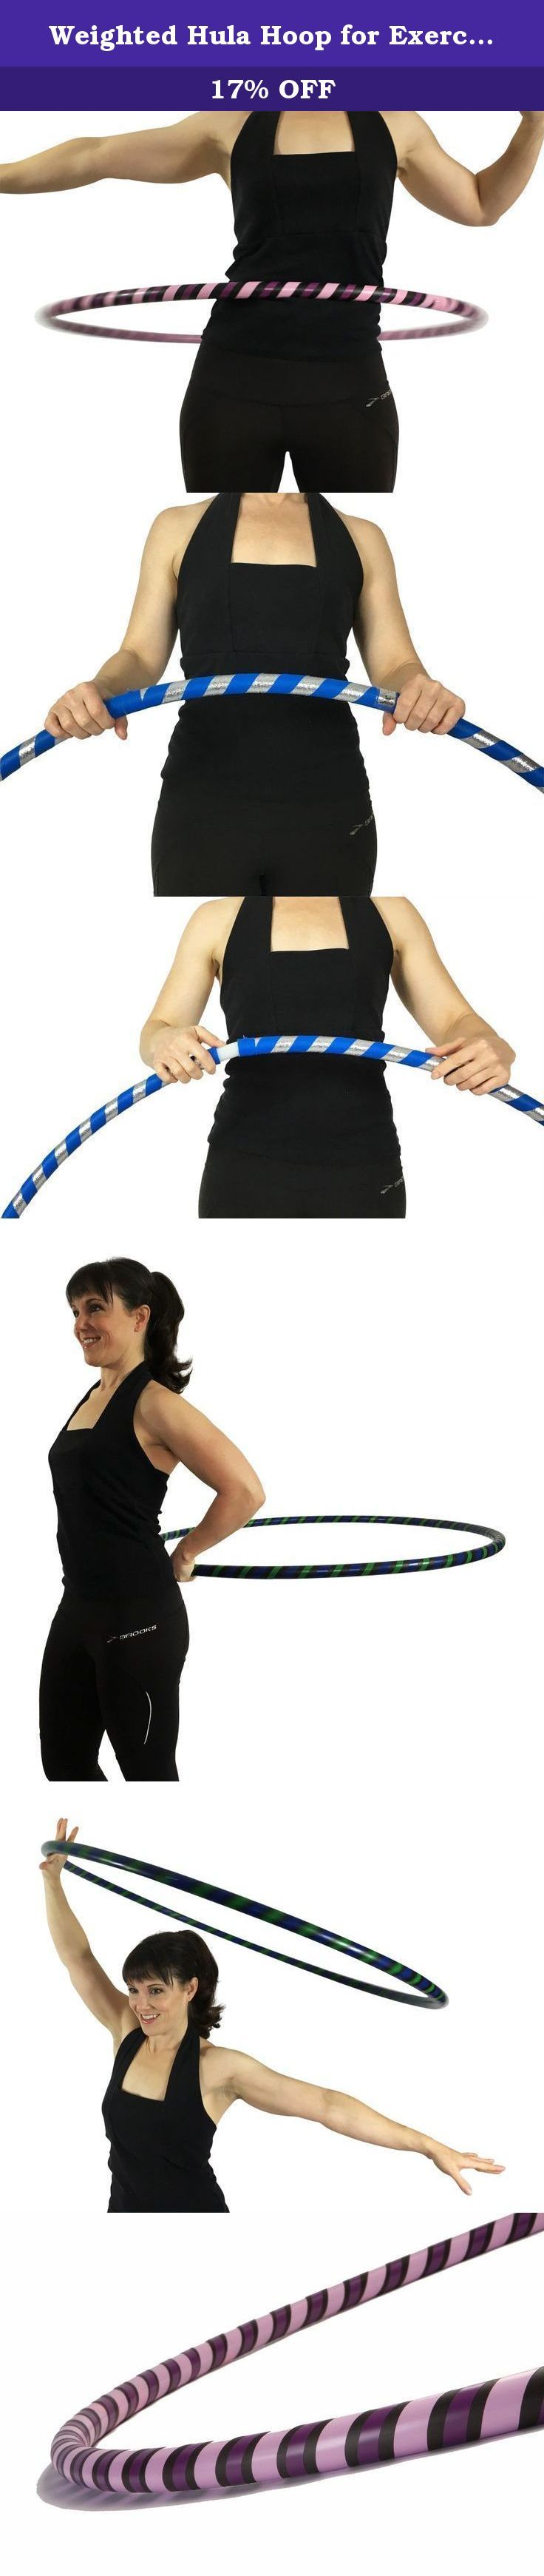 "Weighted Hula Hoop for Exercise and Fitness - 42"" Diameter Regular Adult. Weighted Hula Hoops from Canyon are the only custom hoops that use a heavy duty 200 psi polyethylene tubing for our exercise hoops, that is 25 percent heavier, stronger and 40 to 50 percent more expensive per foot than all other hoops of similar construction. No amount of normal use will cause the hoop to kink, crack, bend, or crush. Our Weighted Exercise Hoops have been designed to combine the ideal size and weight…"